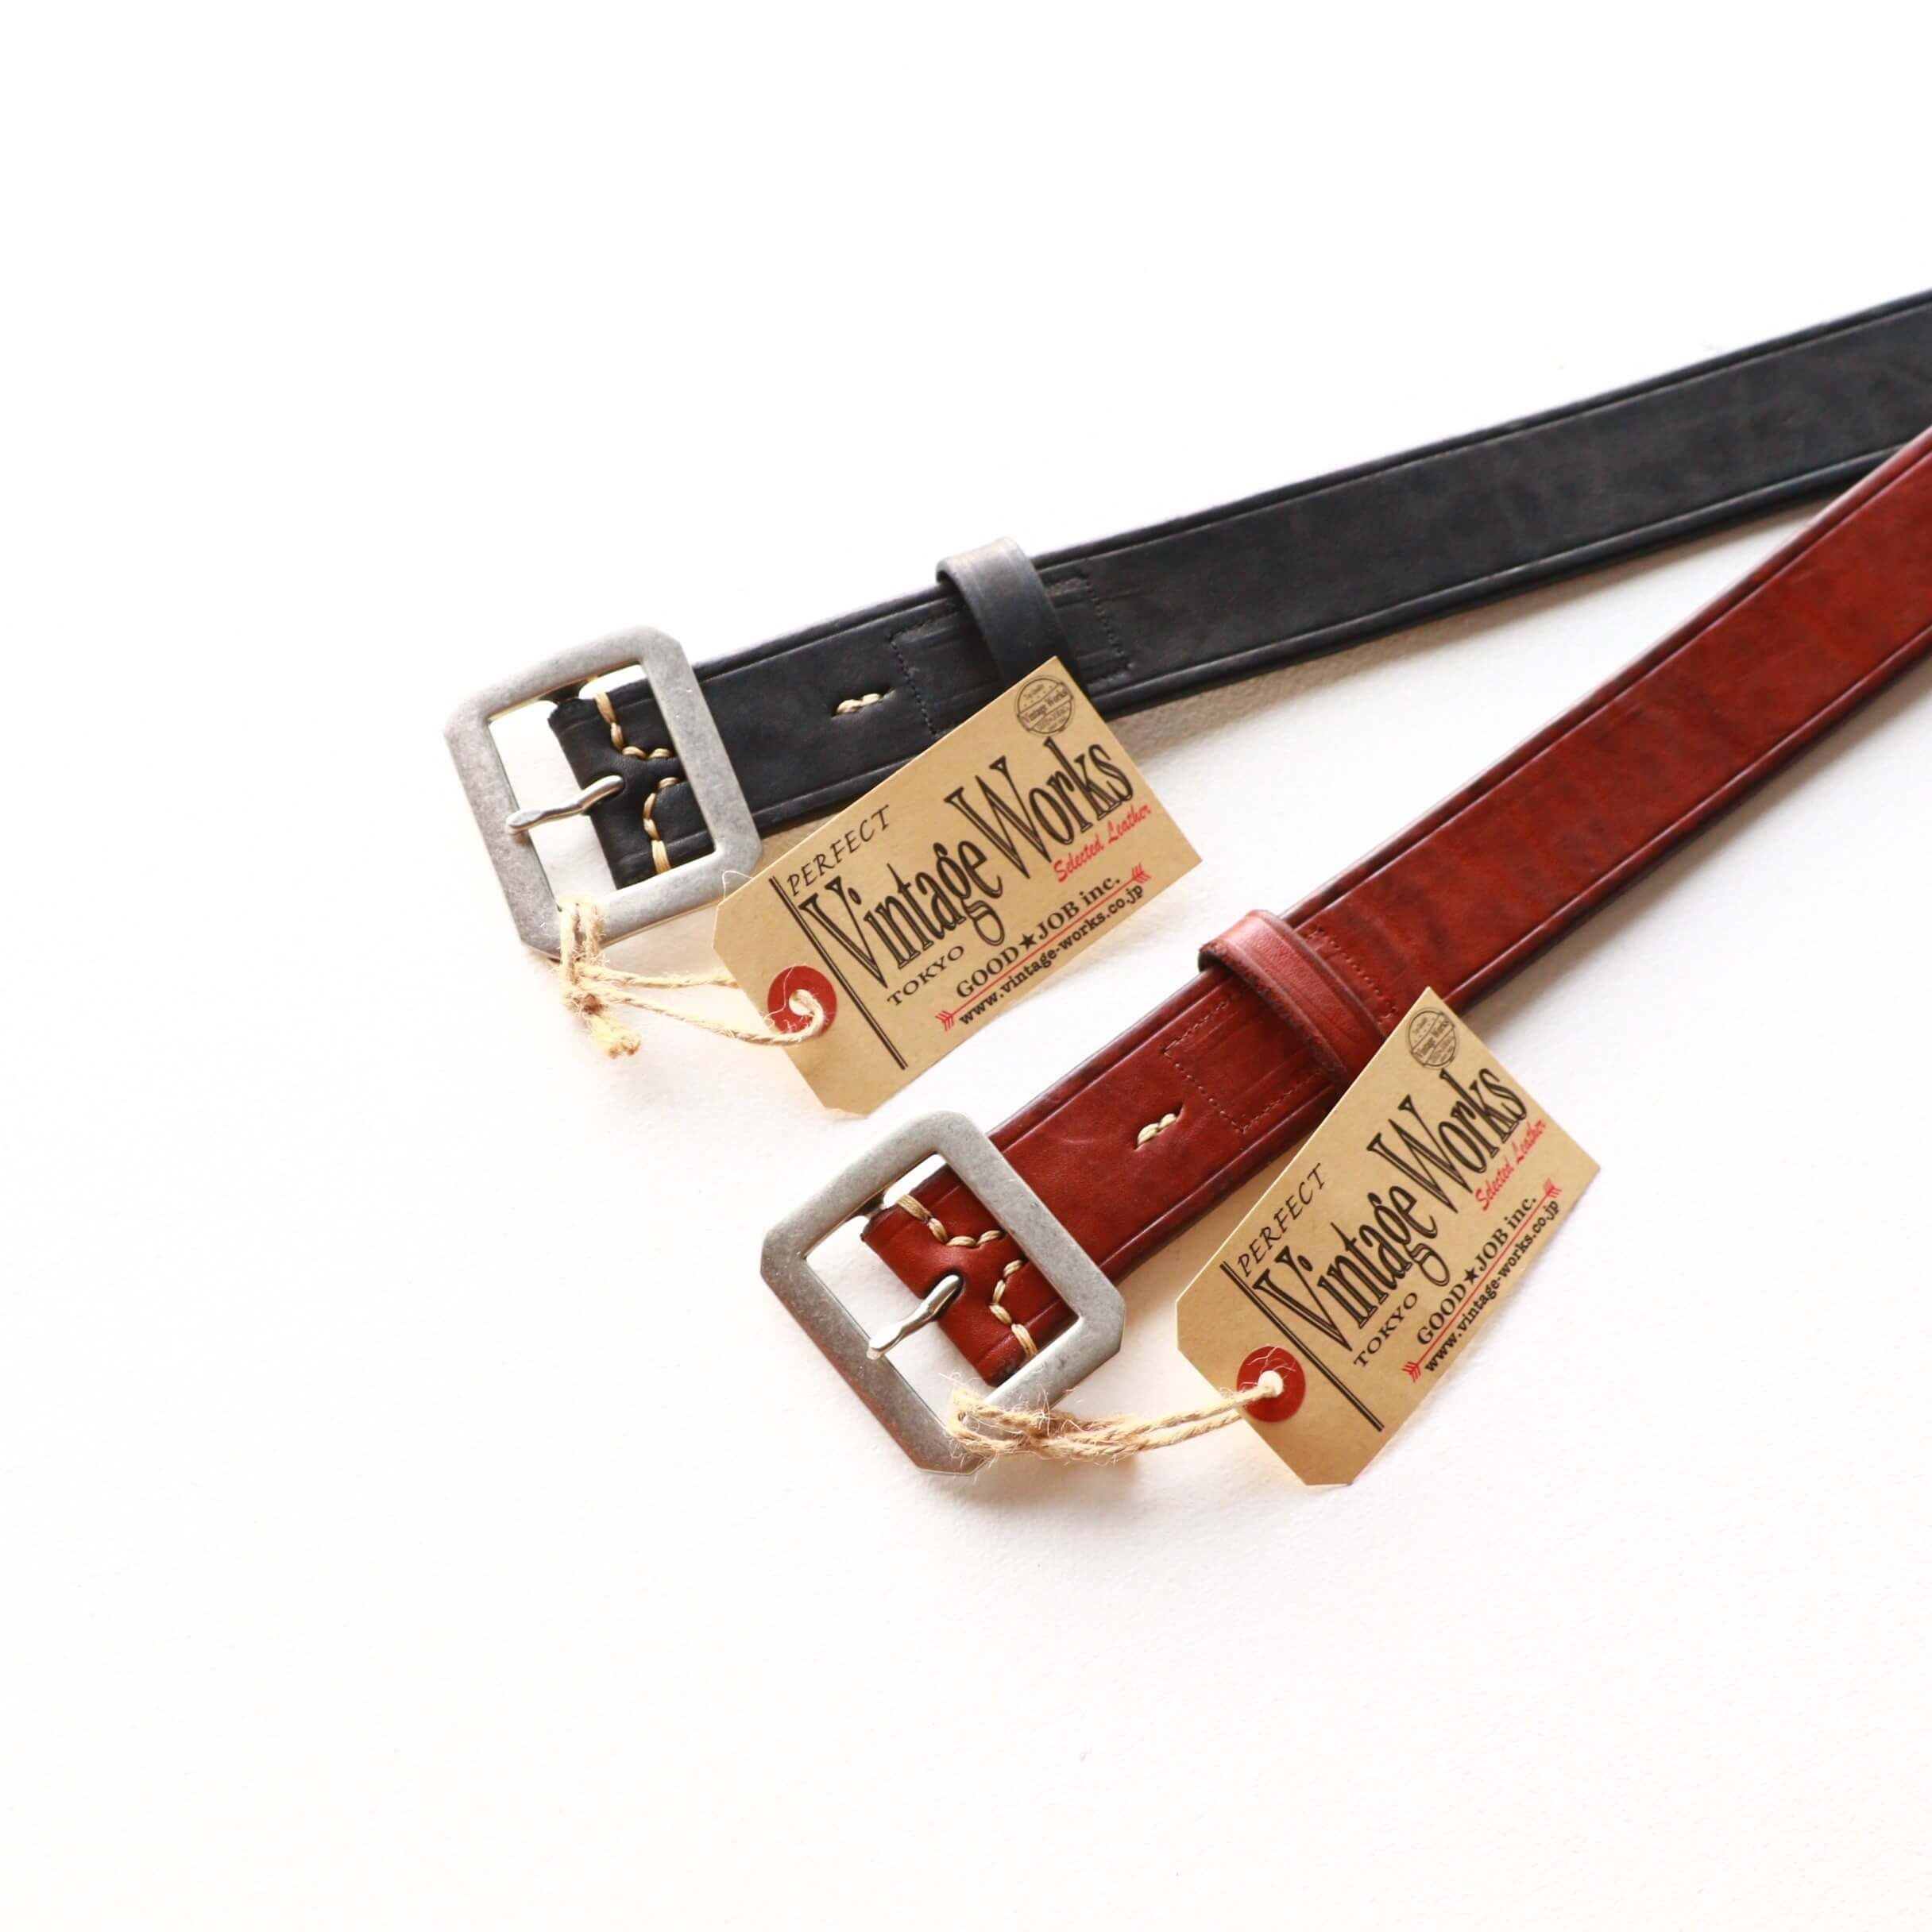 Vintage Works ヴィンテージワークス Leather belt 5Hole レザーベルト 5ホール DH5725